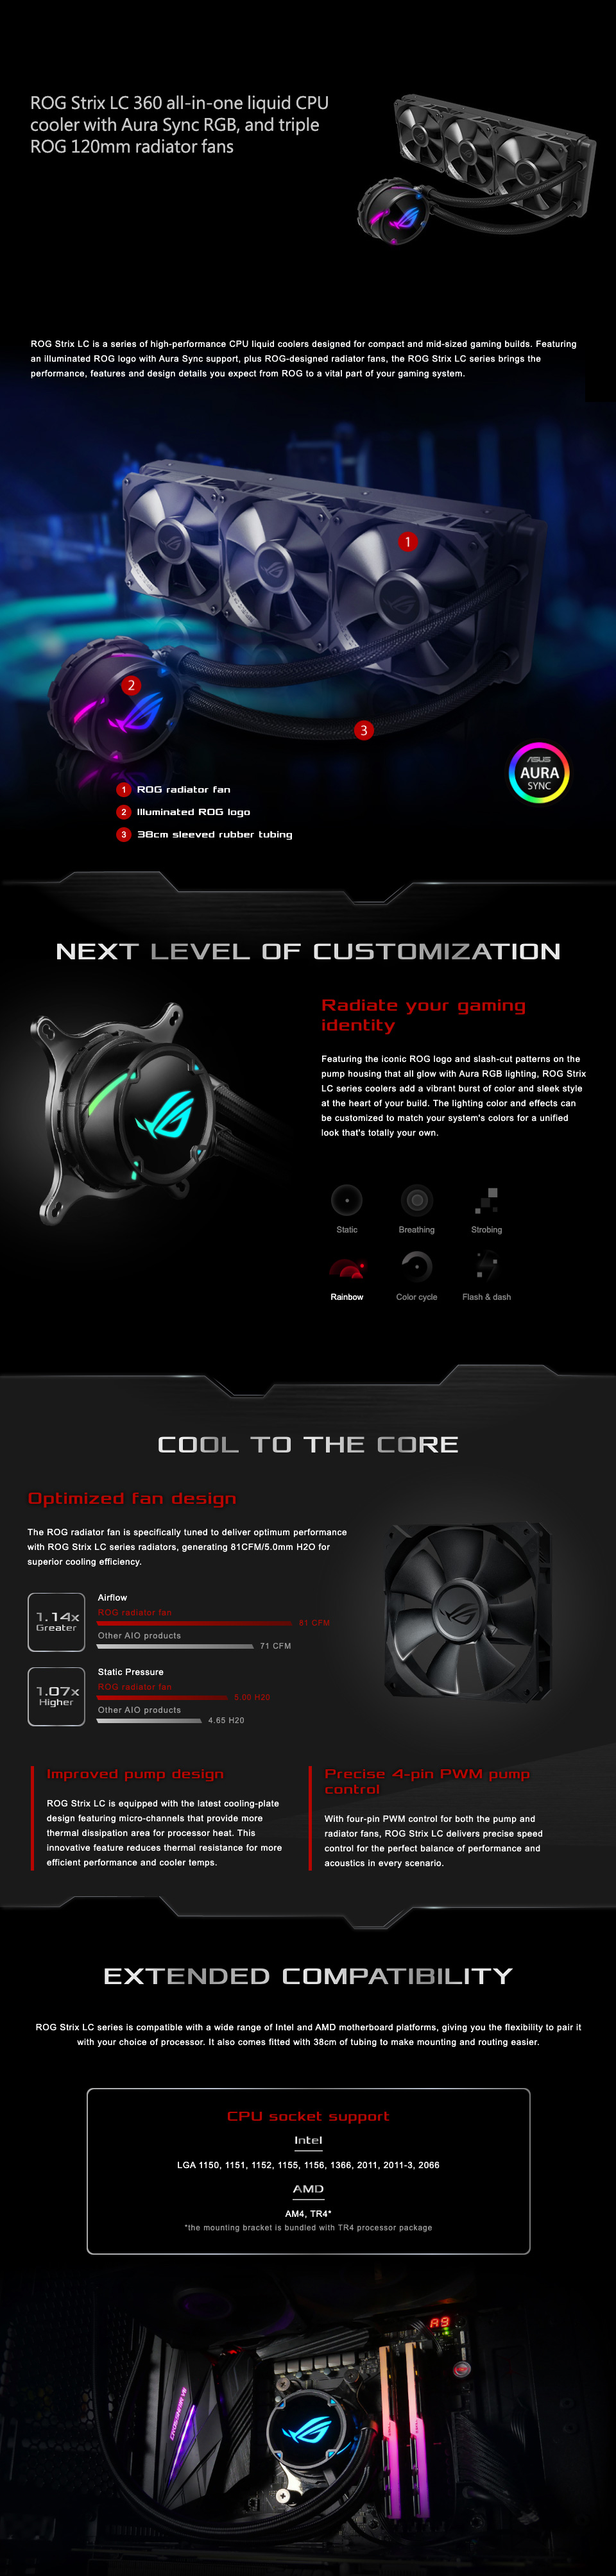 ASUS ROG Strix LC 360 AIO Liquid CPU Cooler features